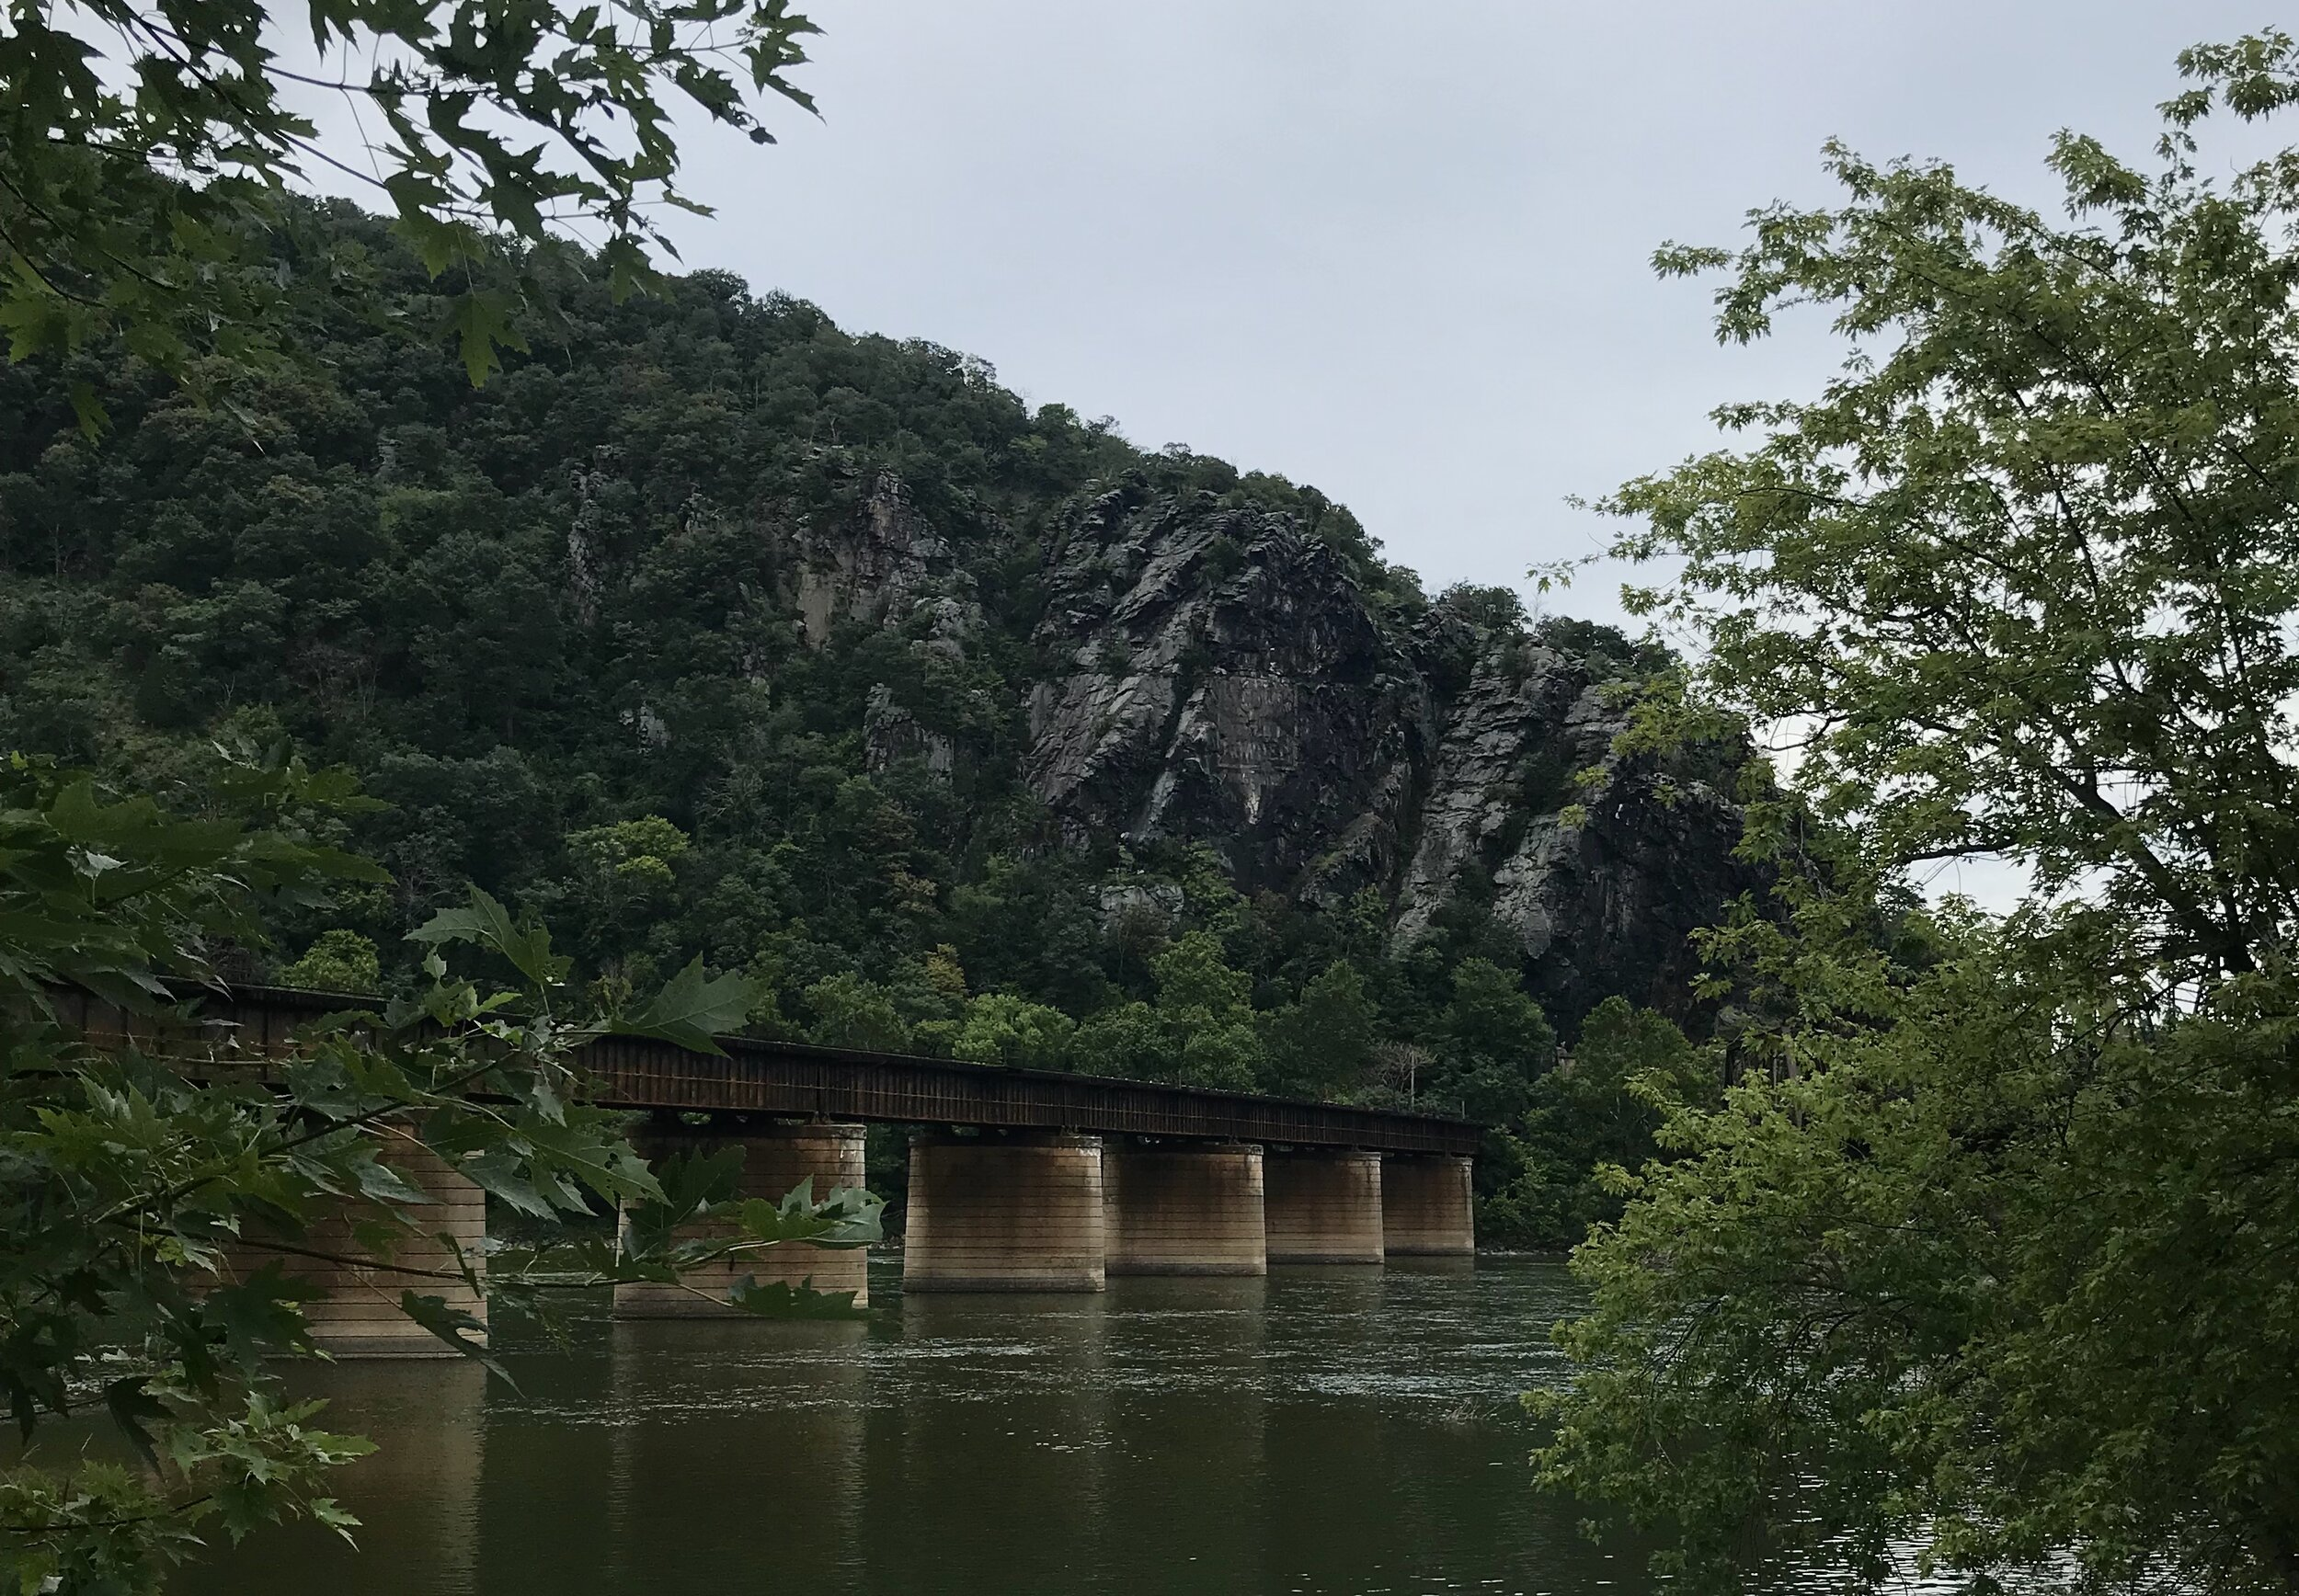 You go over this bridge to start your trek out of Harpers Ferry on the A.T. toward the Ed Garvey Shelter.